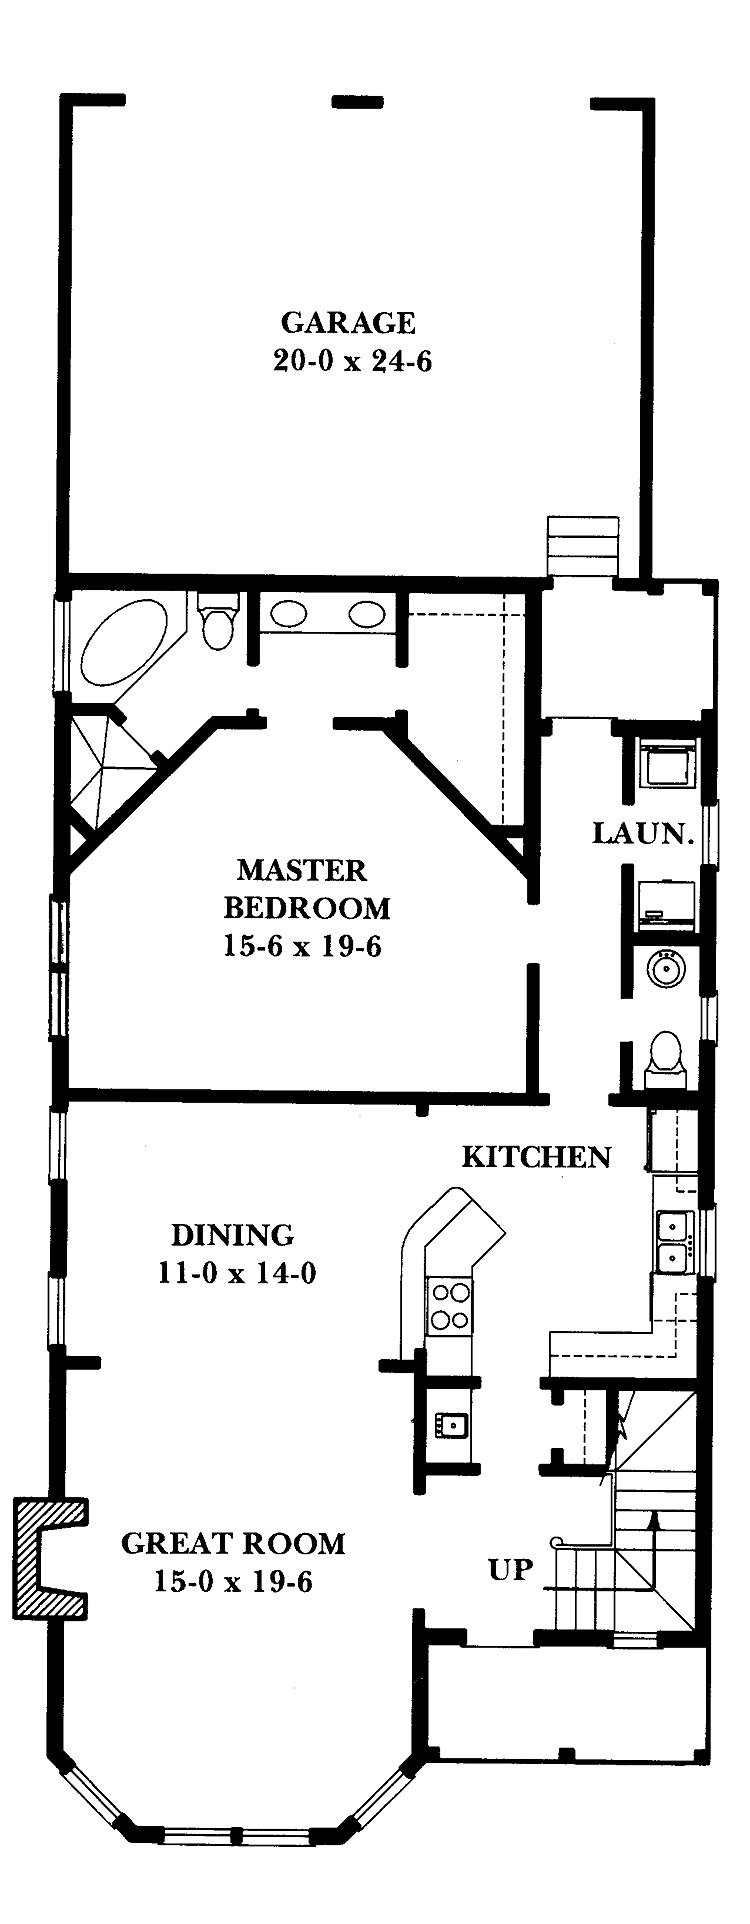 900 Sq Ft Architecture Builder House Plans Designs Small Size And Picture Delectable Builder House Plans Designs Home Design Plans House Plans How To Plan